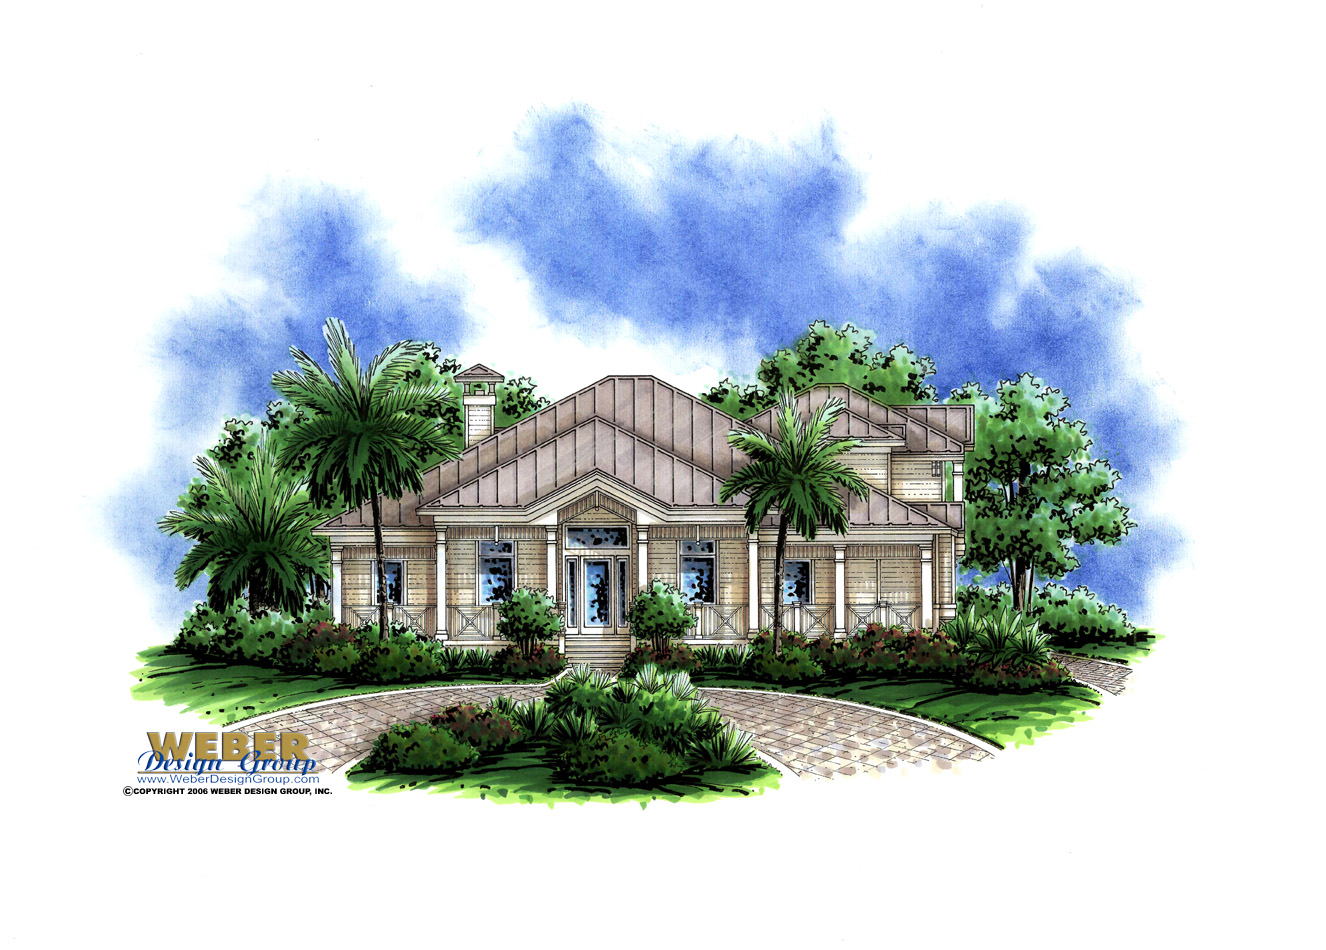 Calypso cove home plan weber design group for Weber design